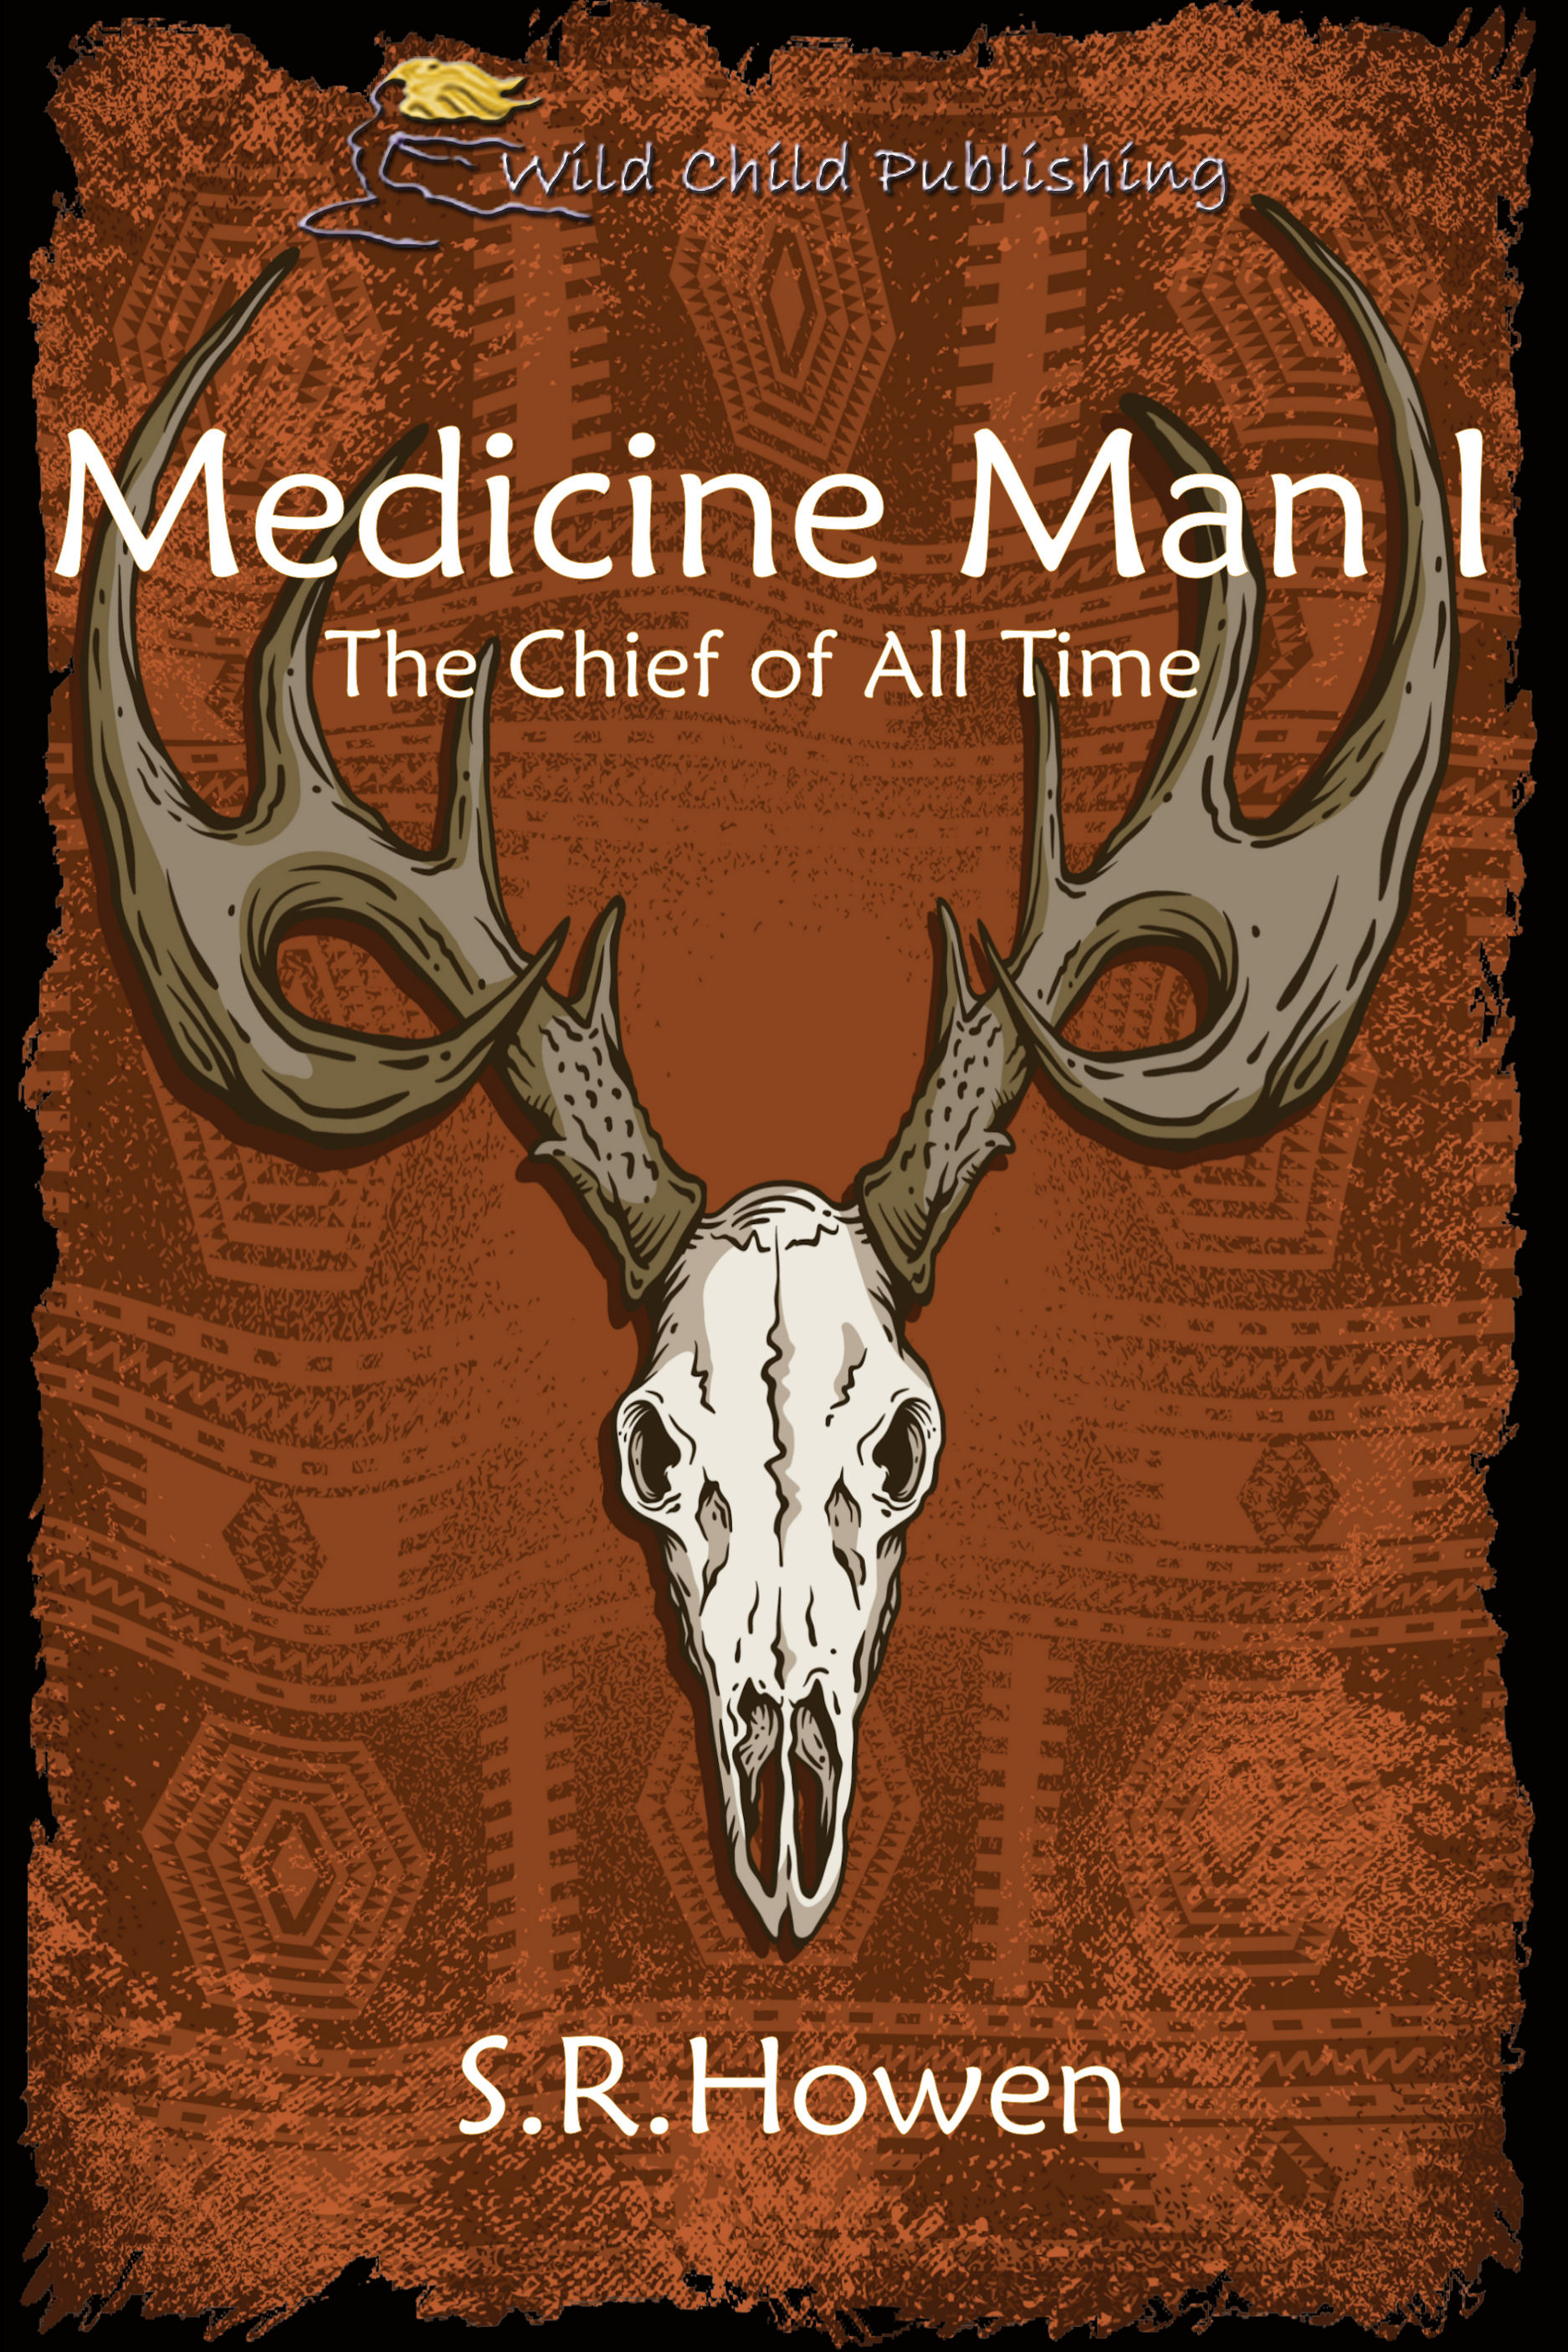 1_21 gf gb Cover_Medicine Man I The Chief of All Time